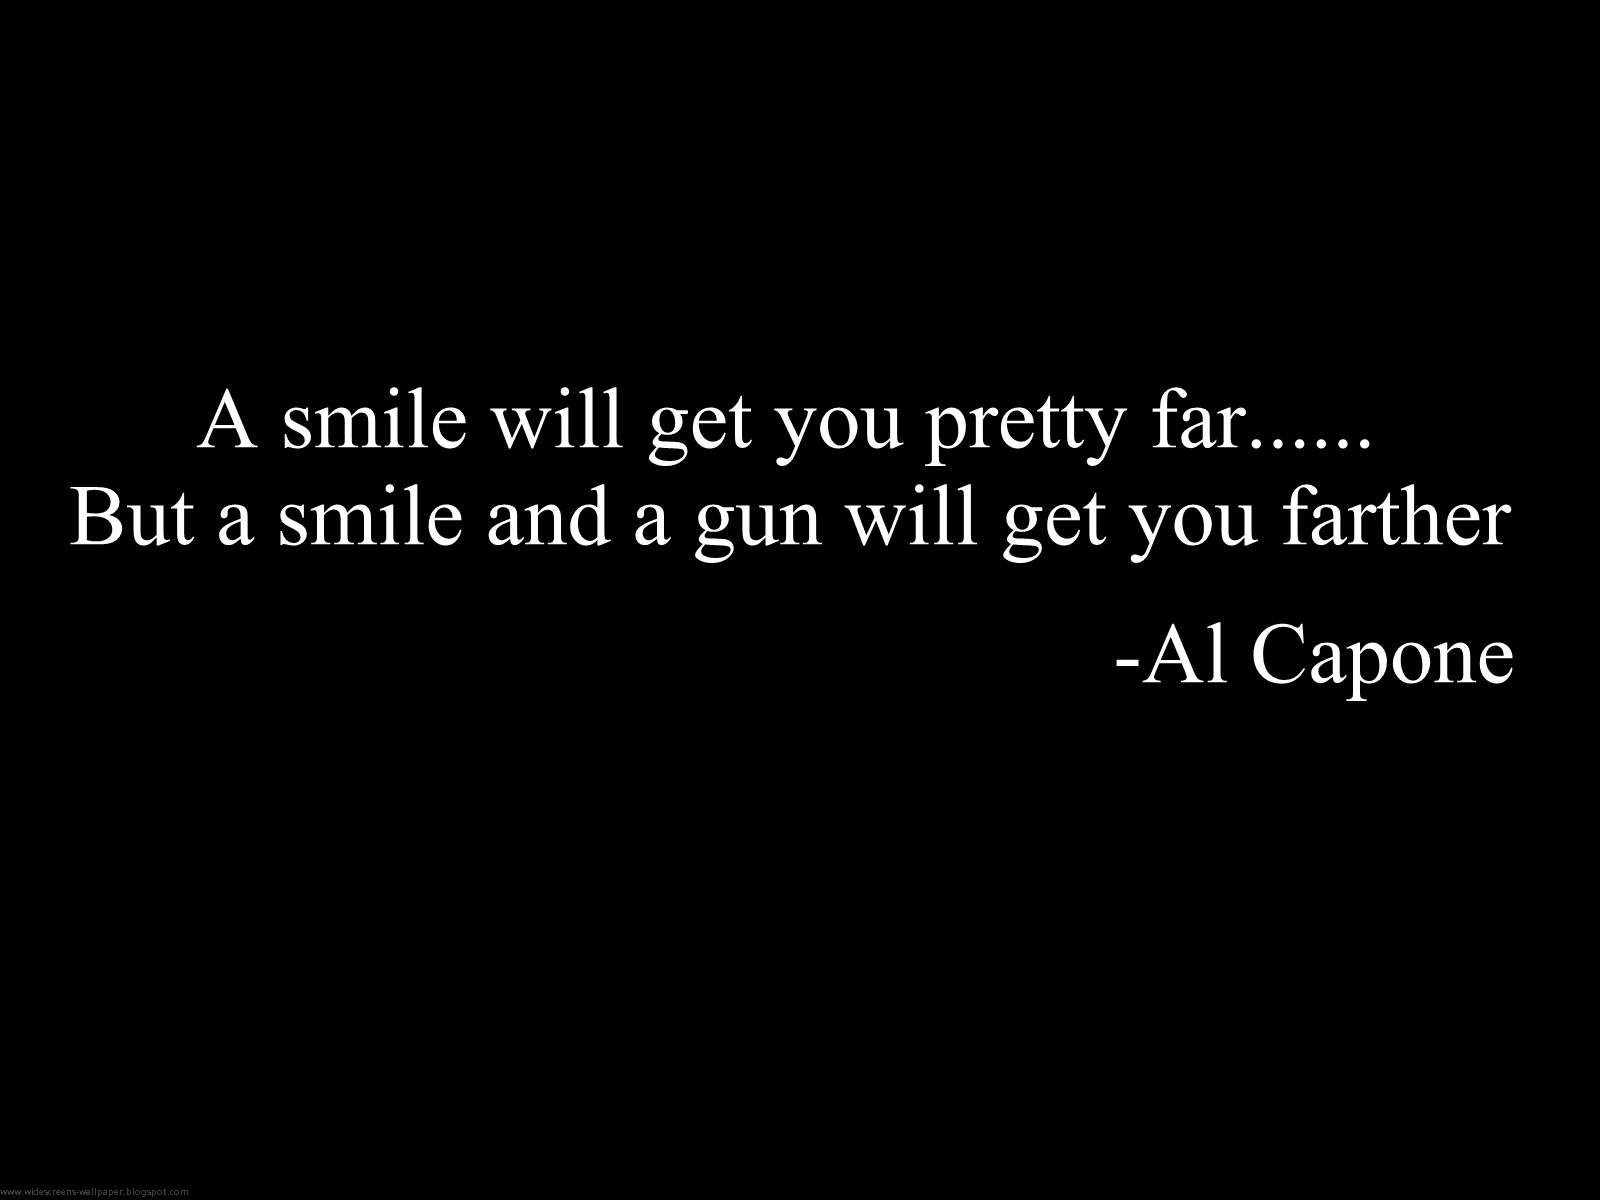 Most Populars Quotes by Al Capone